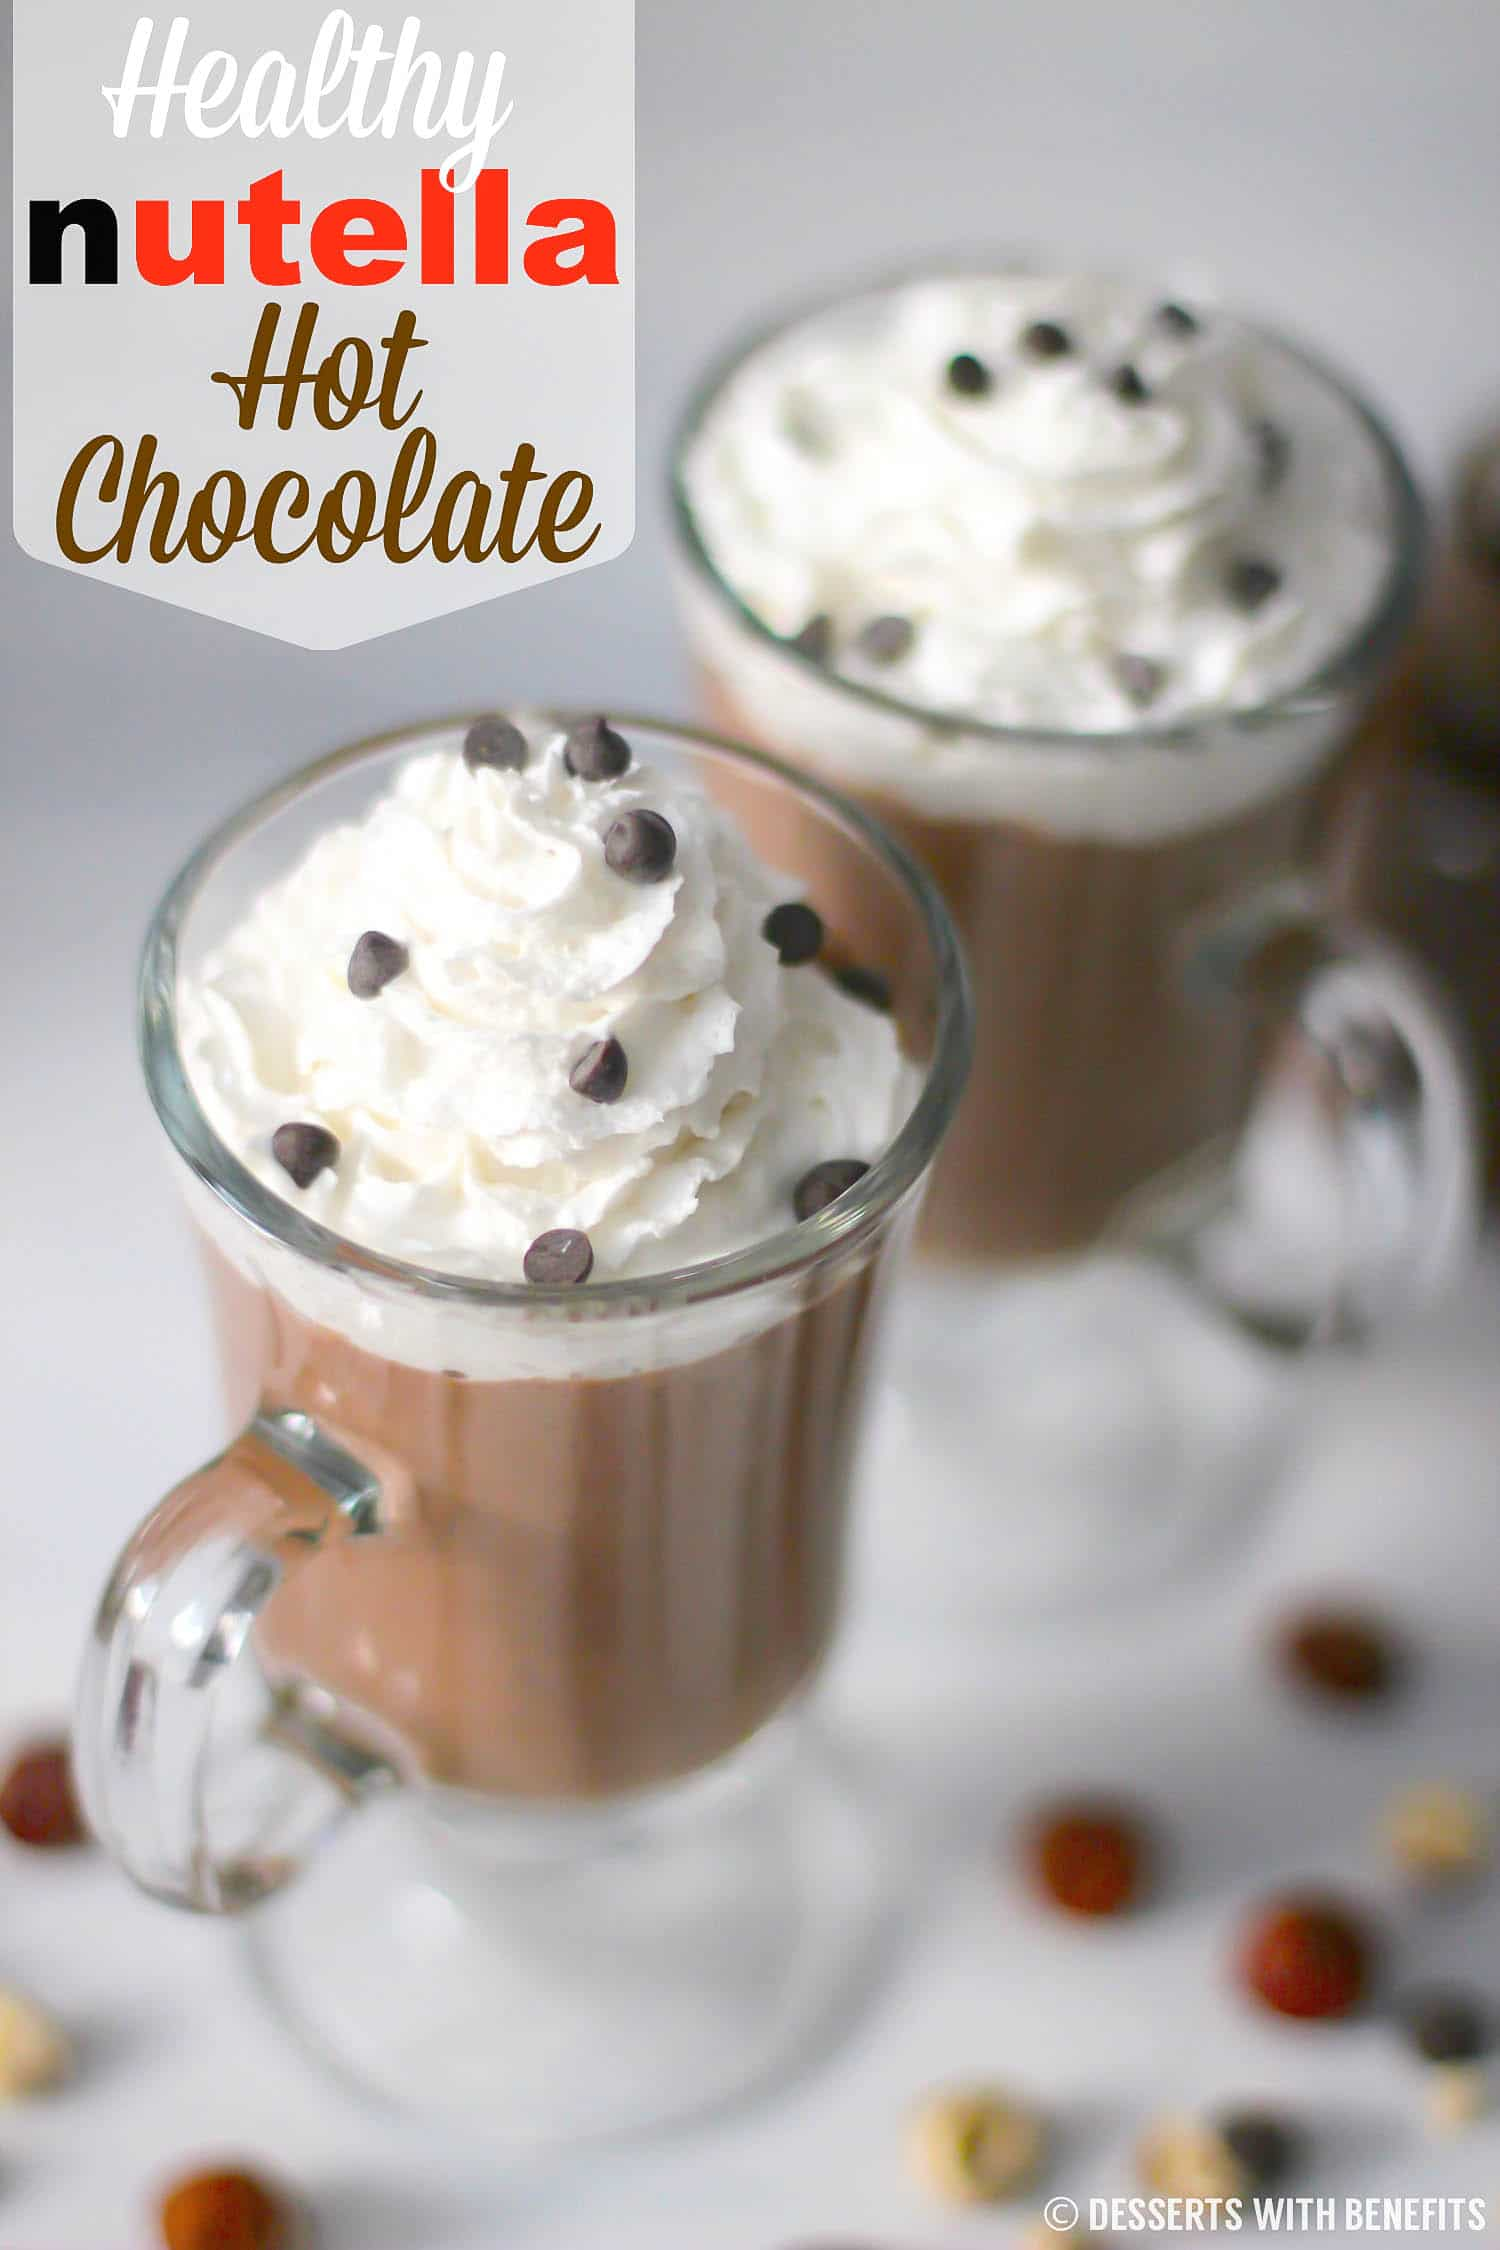 Healthy Nutella Hot Chocolate Recipe (Vegan) | Desserts With Benefits